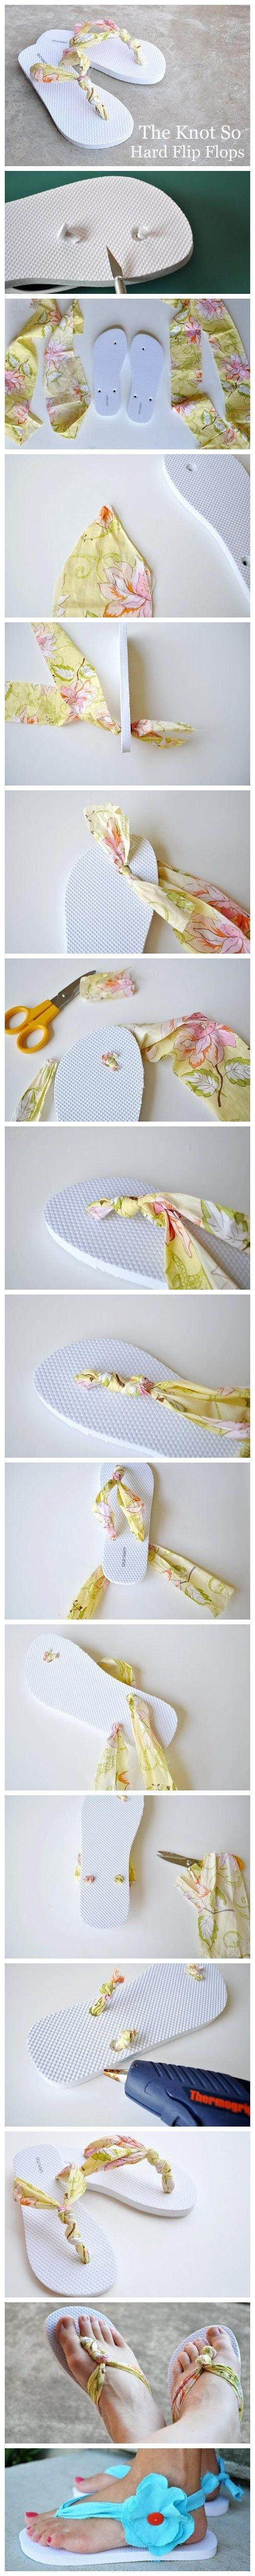 Fabric flip-flops...the first one is so cute! Cheap to make too........fun to make for a craft and just for fun